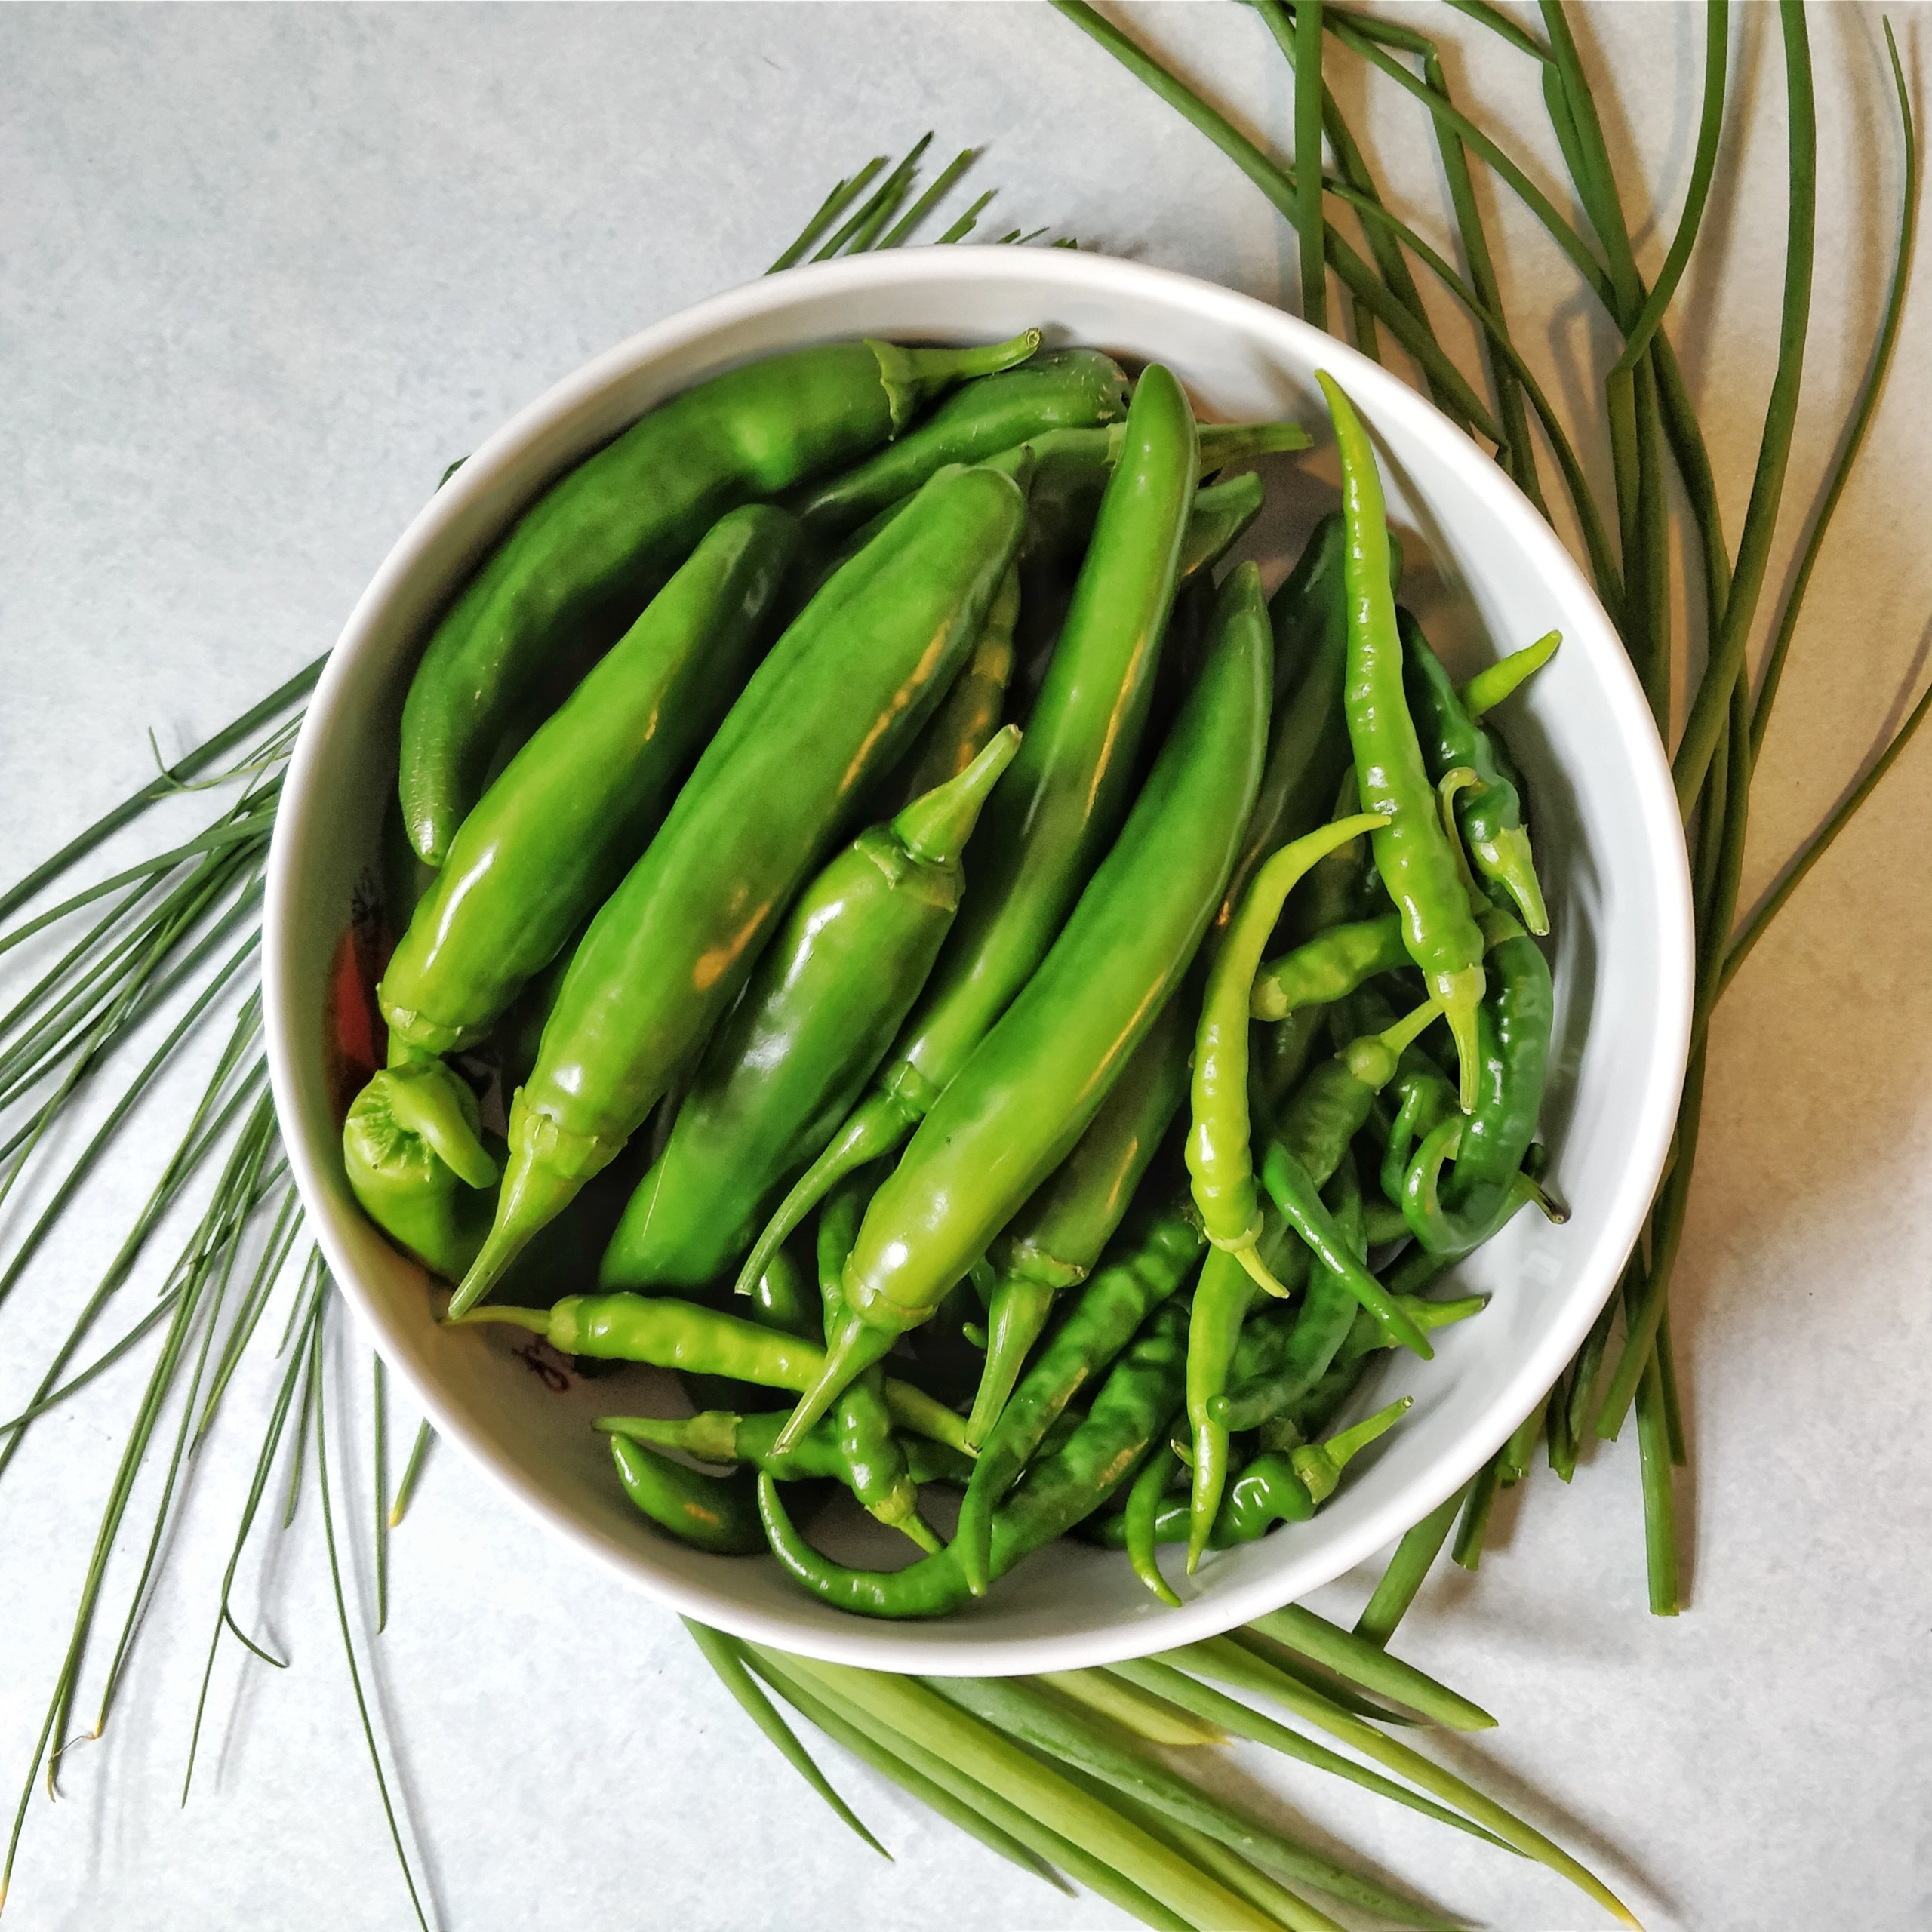 Bowl of green chilies surrounded by scallions